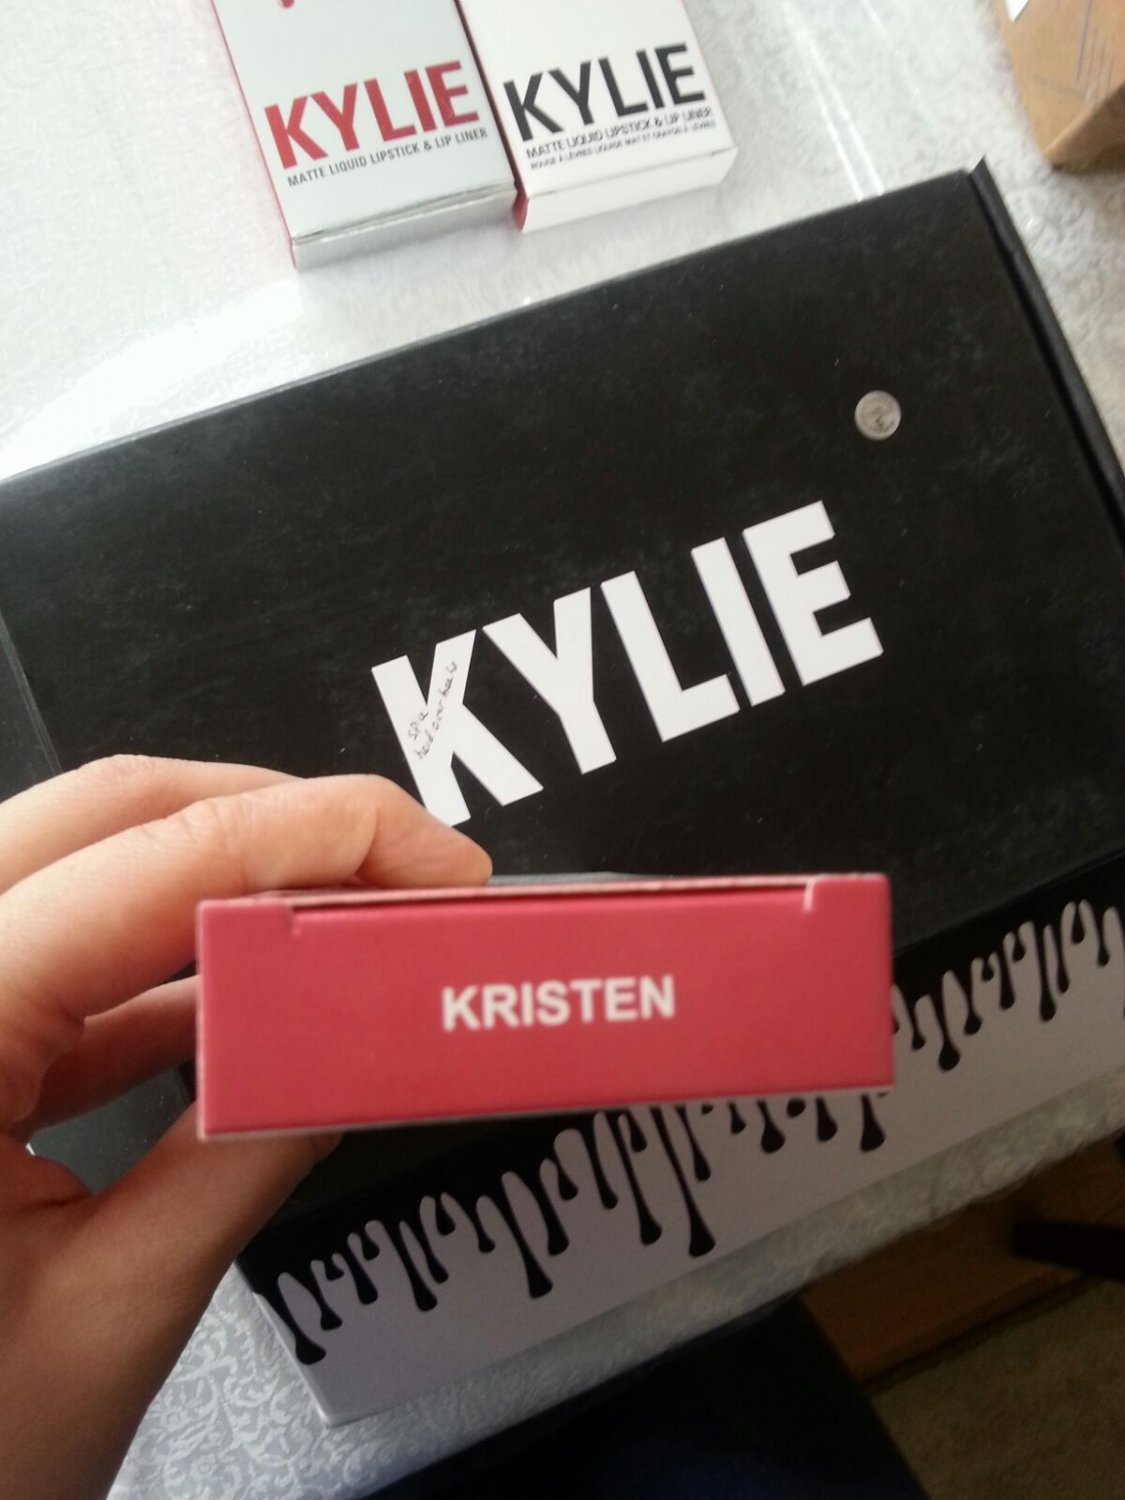 Kylie Jenner Matte Liquid Lip Kit in Kristen